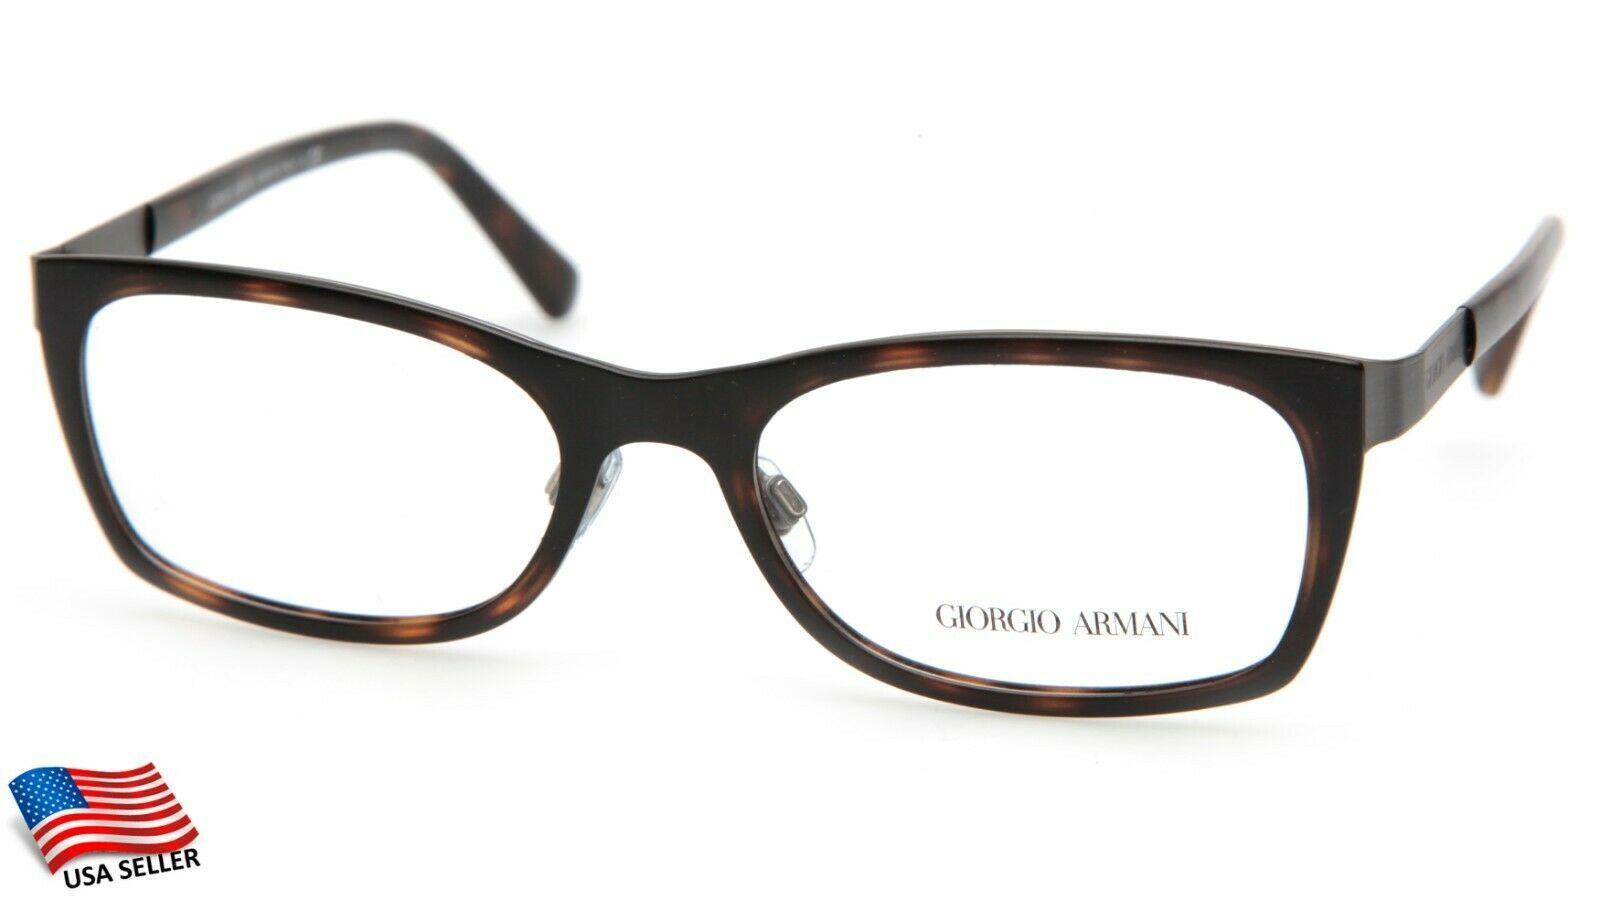 Primary image for NEW GIORGIO ARMANI AR 5013 3032 HAVANA EYEGLASSES FRAME 52-17-135 B33mm Italy